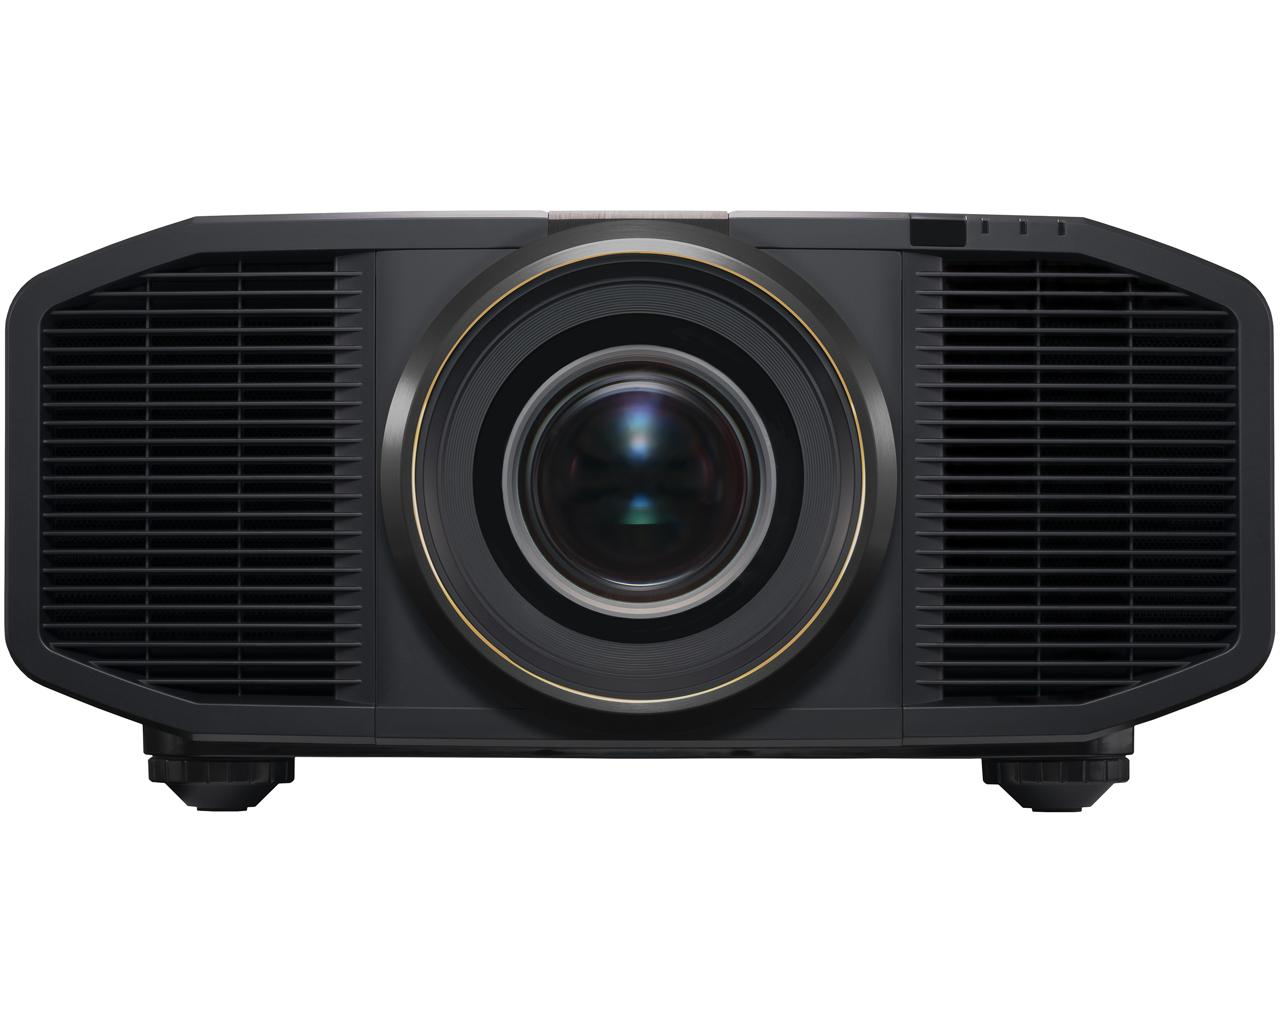 JVC DLA-Z1 - 3000 Lumens 4096 x 2160 (4K) Resolution JVC Projector